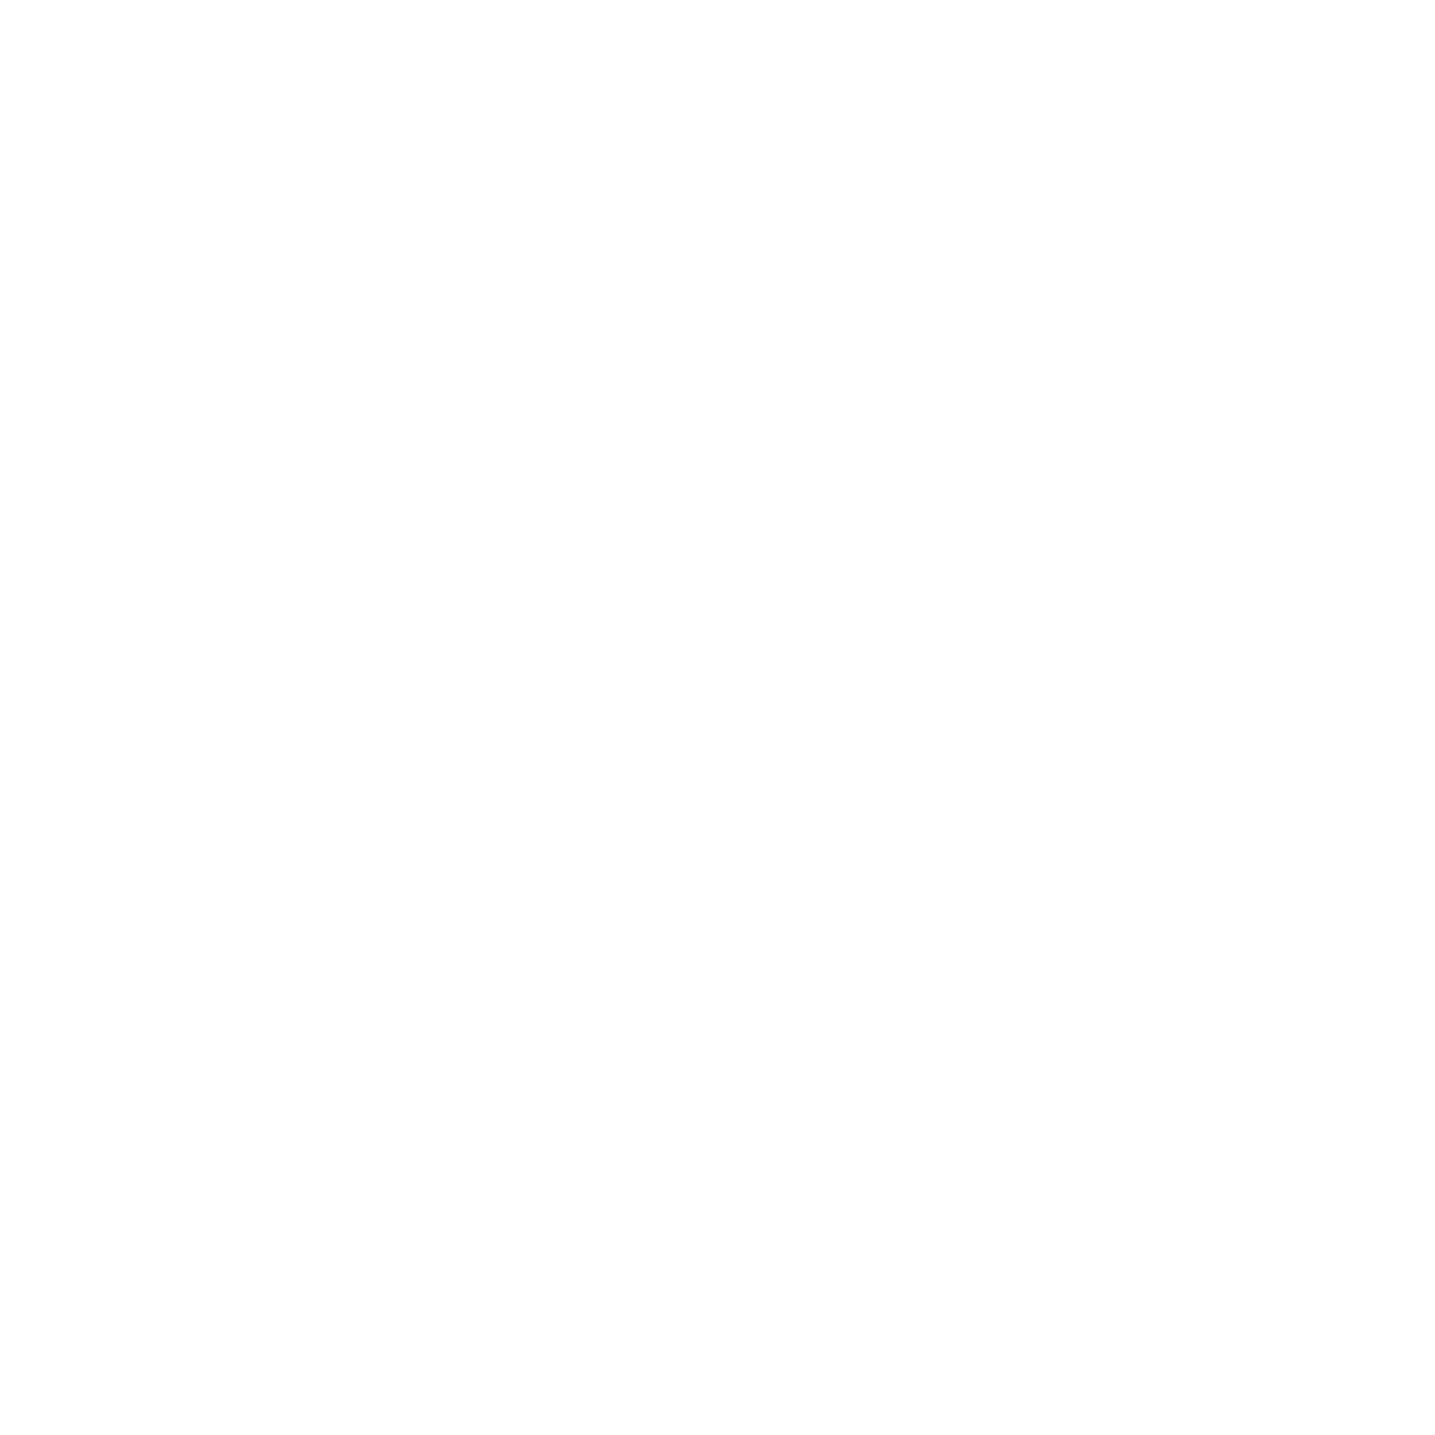 OVER 40 YEARS SERVICE